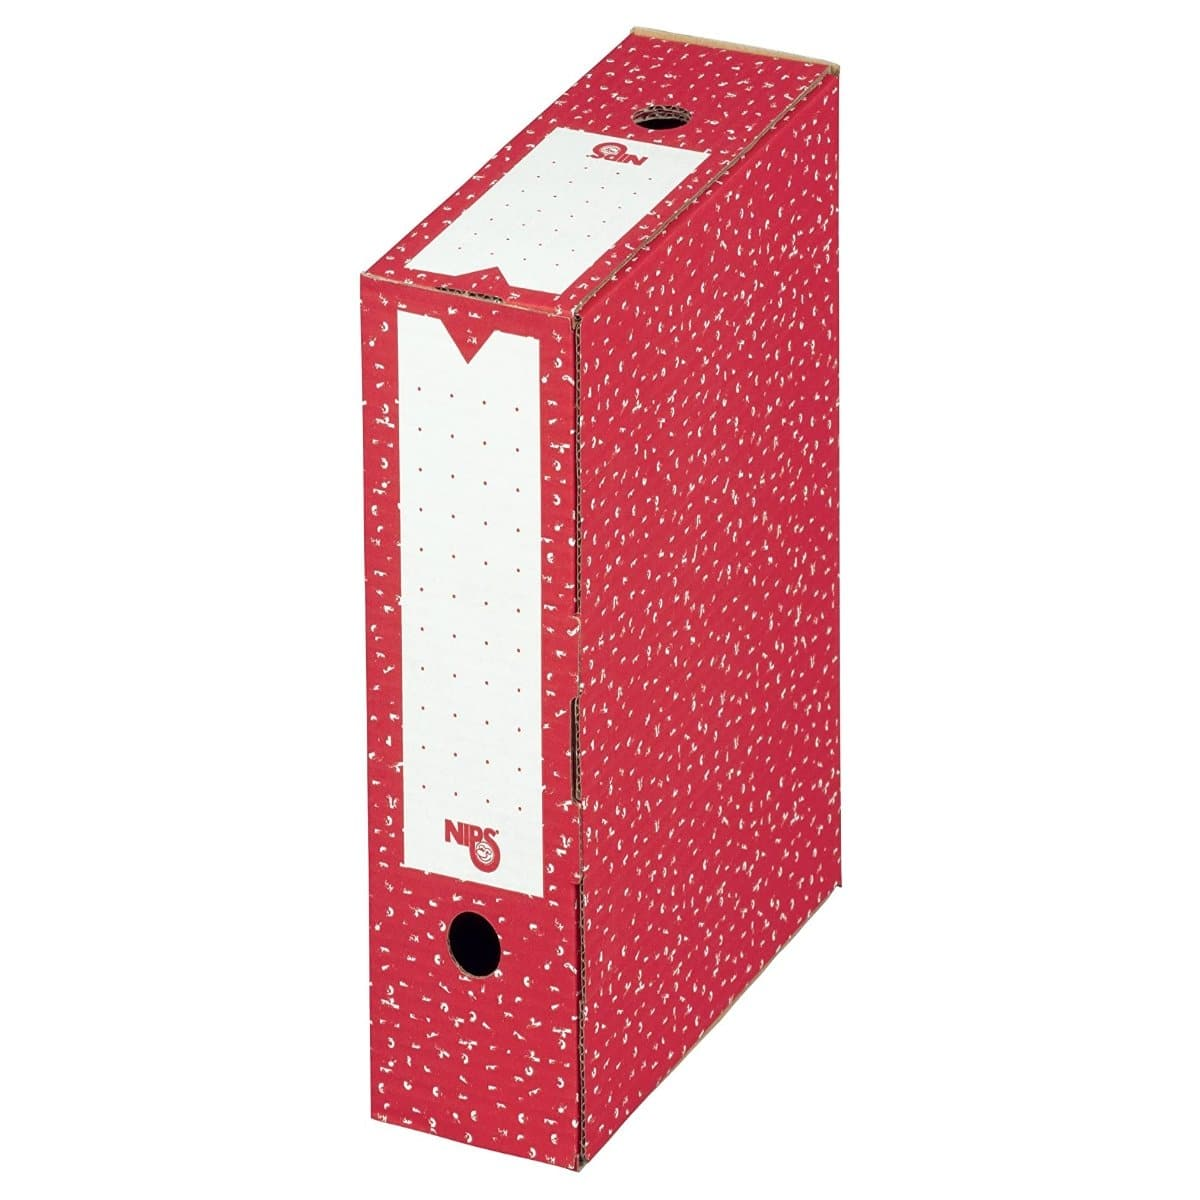 NIPS Archive Filing Box 80, W80xL265x H325mm, Red